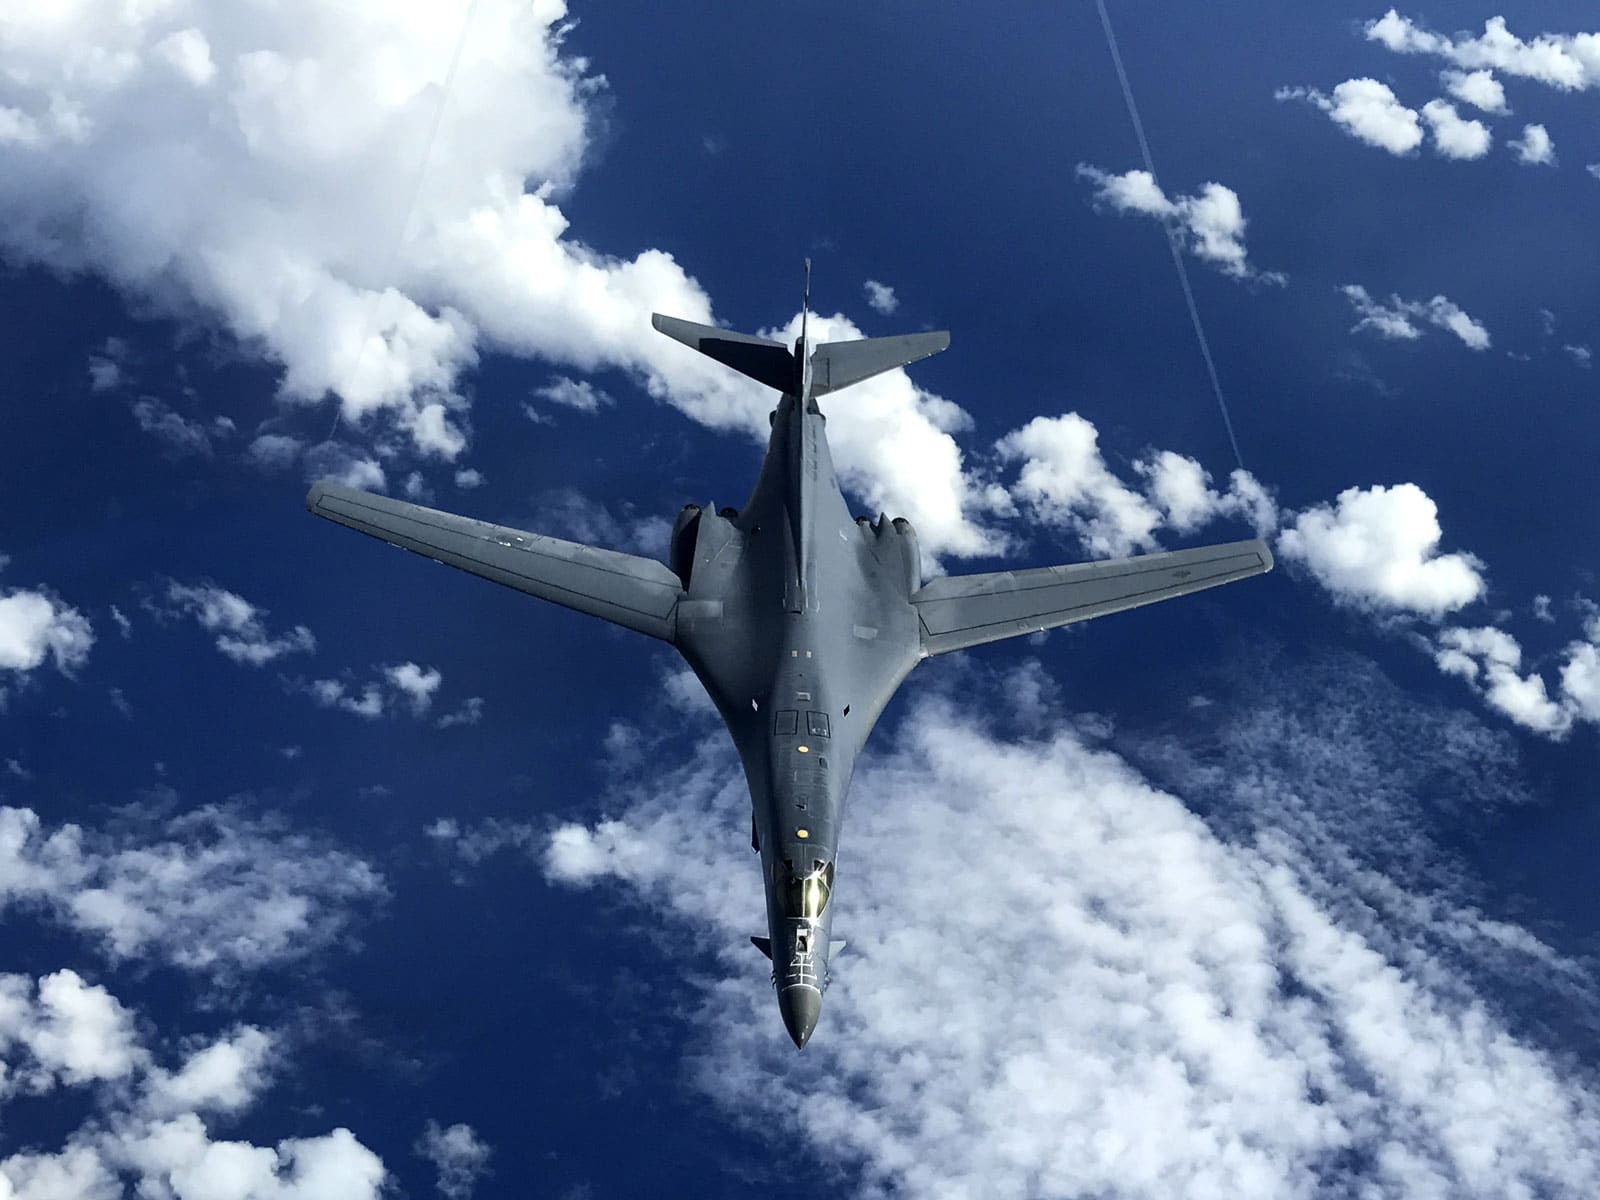 The United States Air Force B-1B Lancer conducted a bilateral training mission with Royal Australian Air Force Joint Terminal Attack Controllers as part of Exercise Black Dagger, a training exercise designed to foster increased interoperability between Australia and the U.S.